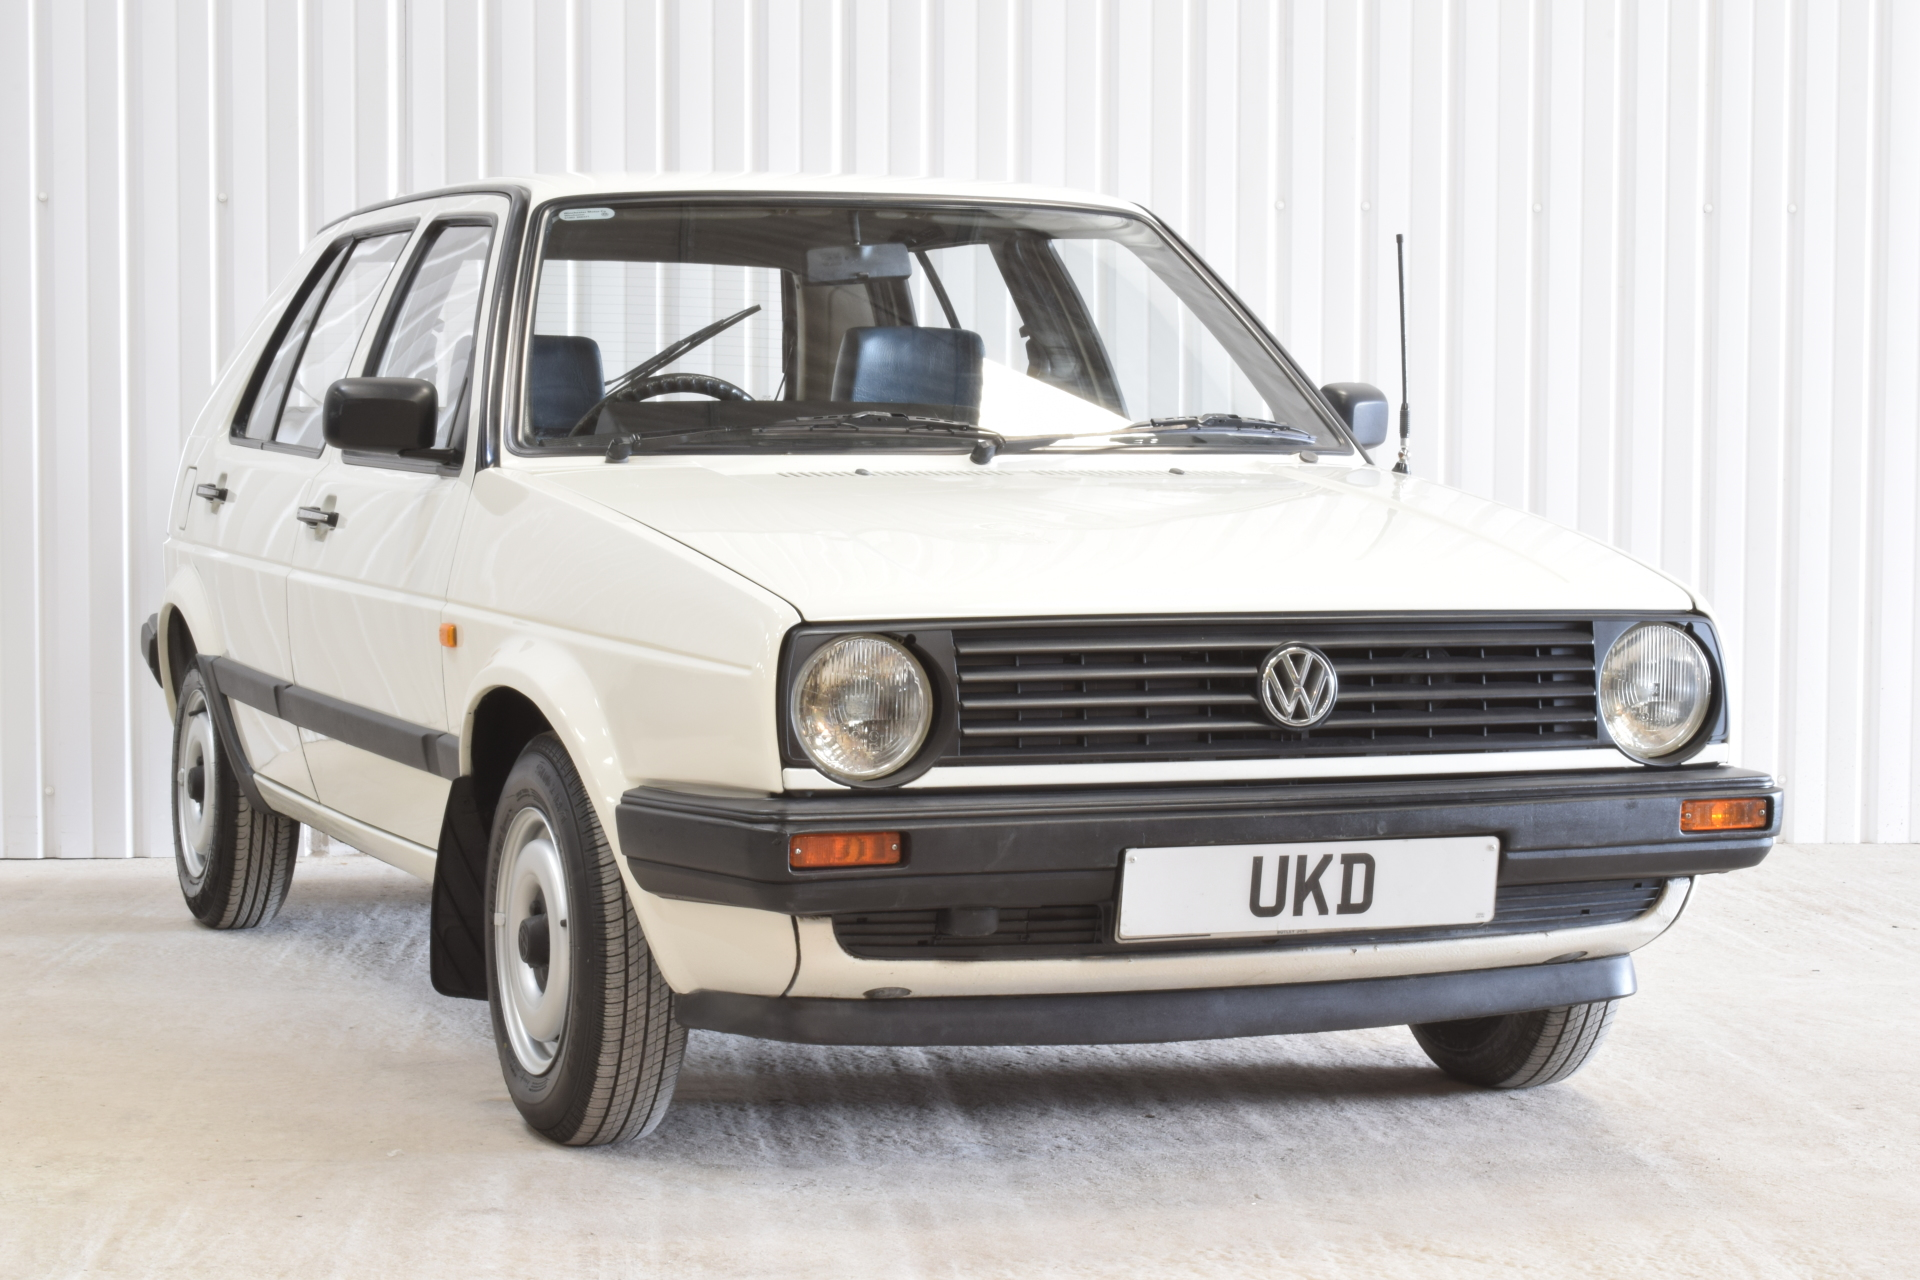 VW GOLF MK2 1.3 5DR WHITE 1988